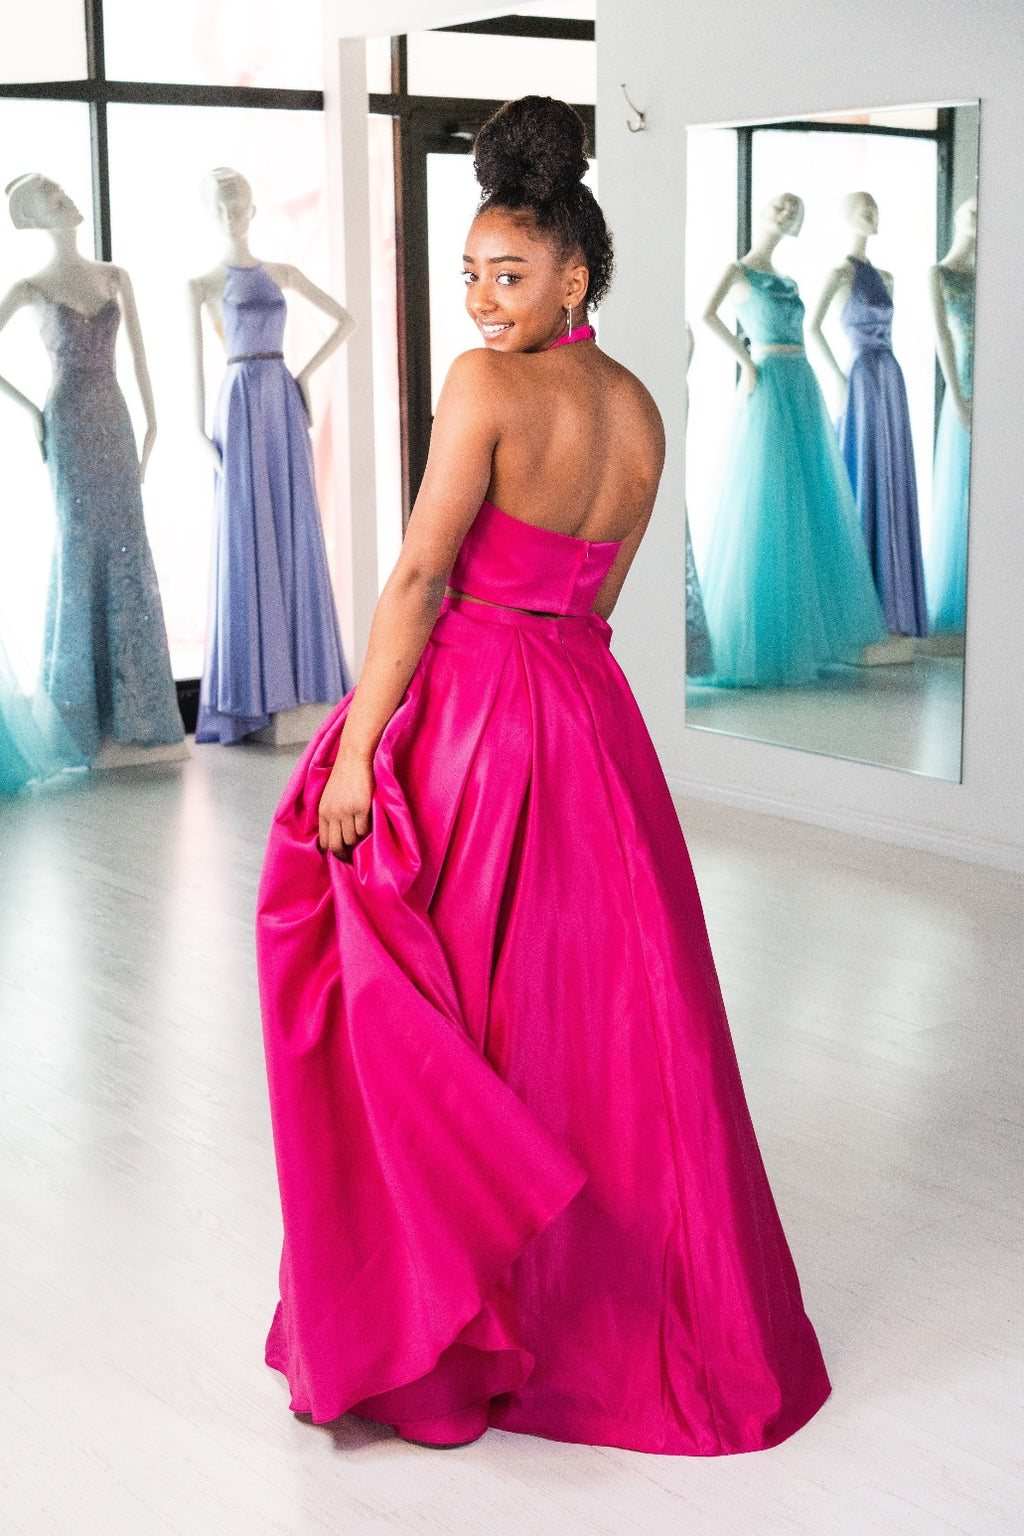 This ABU 6412 two-piece flowy gown in fuchsia features a high neck bodice, beading embellishments on the pockets, and an open back.